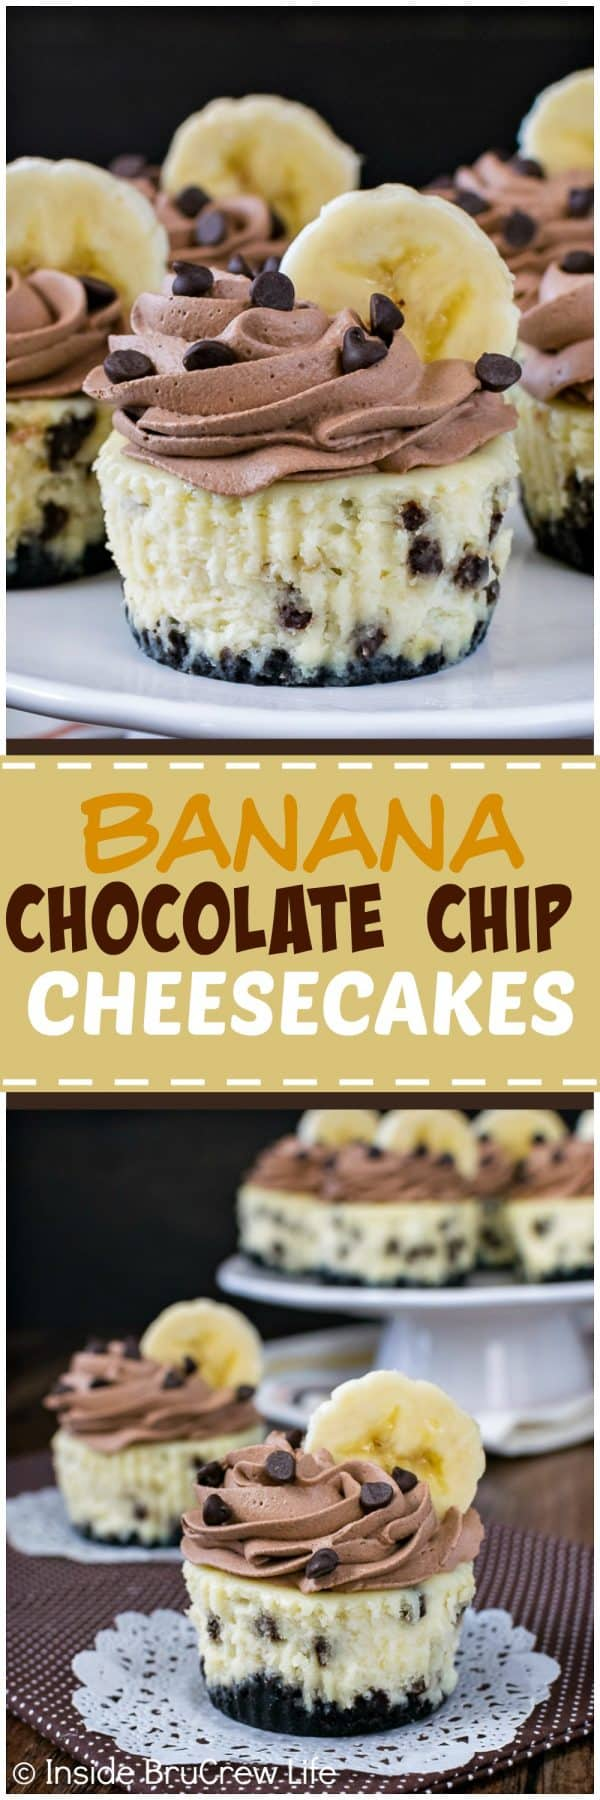 Banana Chocolate Chip Cheesecakes - these little cheesecakes are full of real banana flavor and lots of chocolate chips. A homemade chocolate whipped cream with fresh banana slices makes them look so pretty. Perfect recipe for parties!